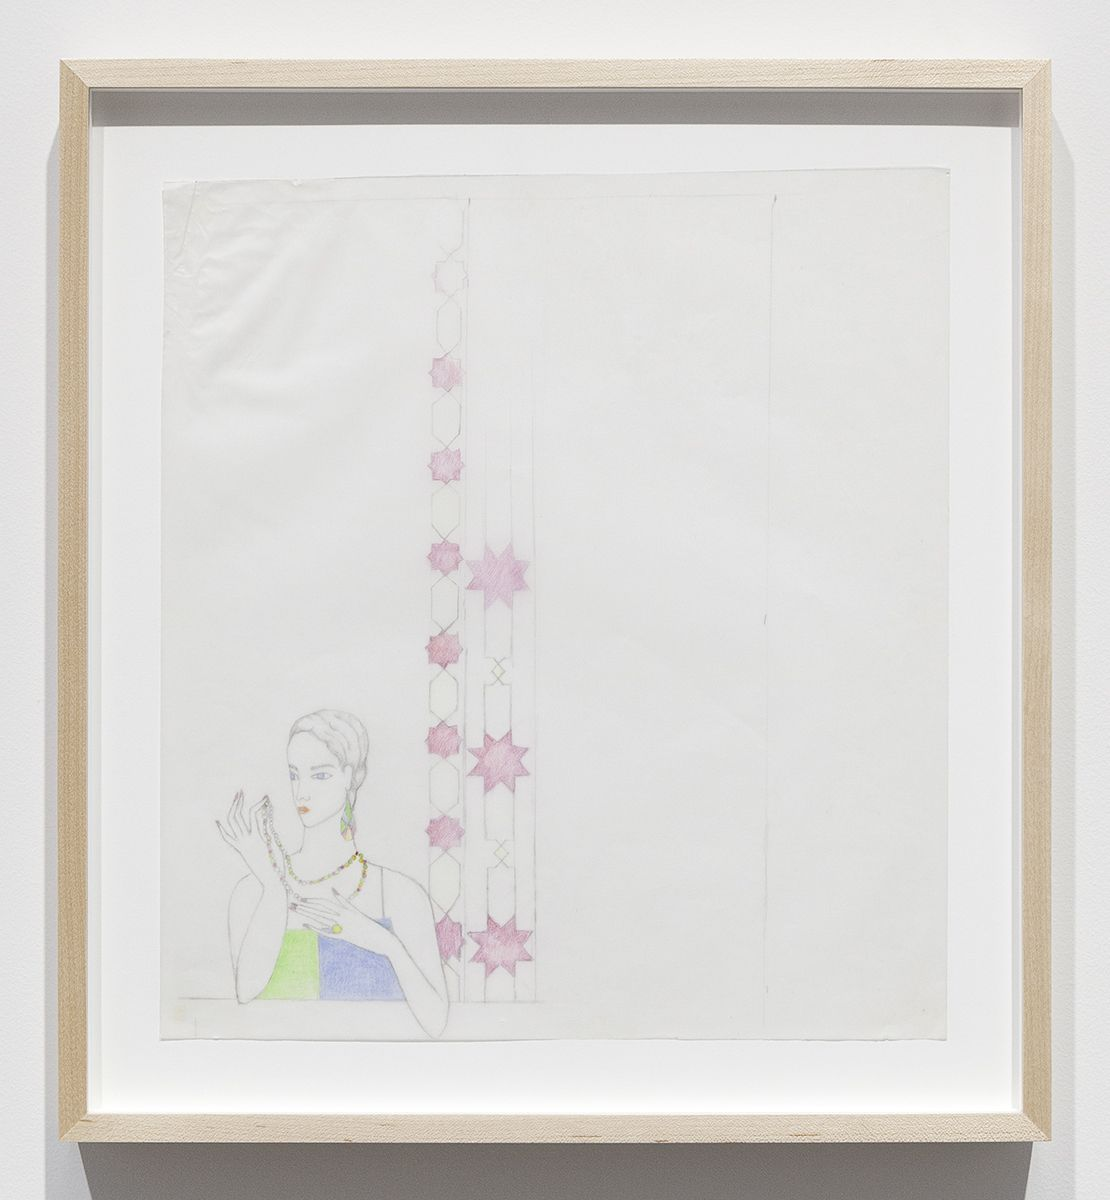 Katharina Wulff Untitled, 2015 Pencil, colored pencil on transparent paper Paper: 12 3/4 x 11 5/8 inches (32.4 x 29.5 cm) Frame: 16 x 14 1/2 x 1 3/8 inches (40.6 x 36.8 x 3.5 cm)